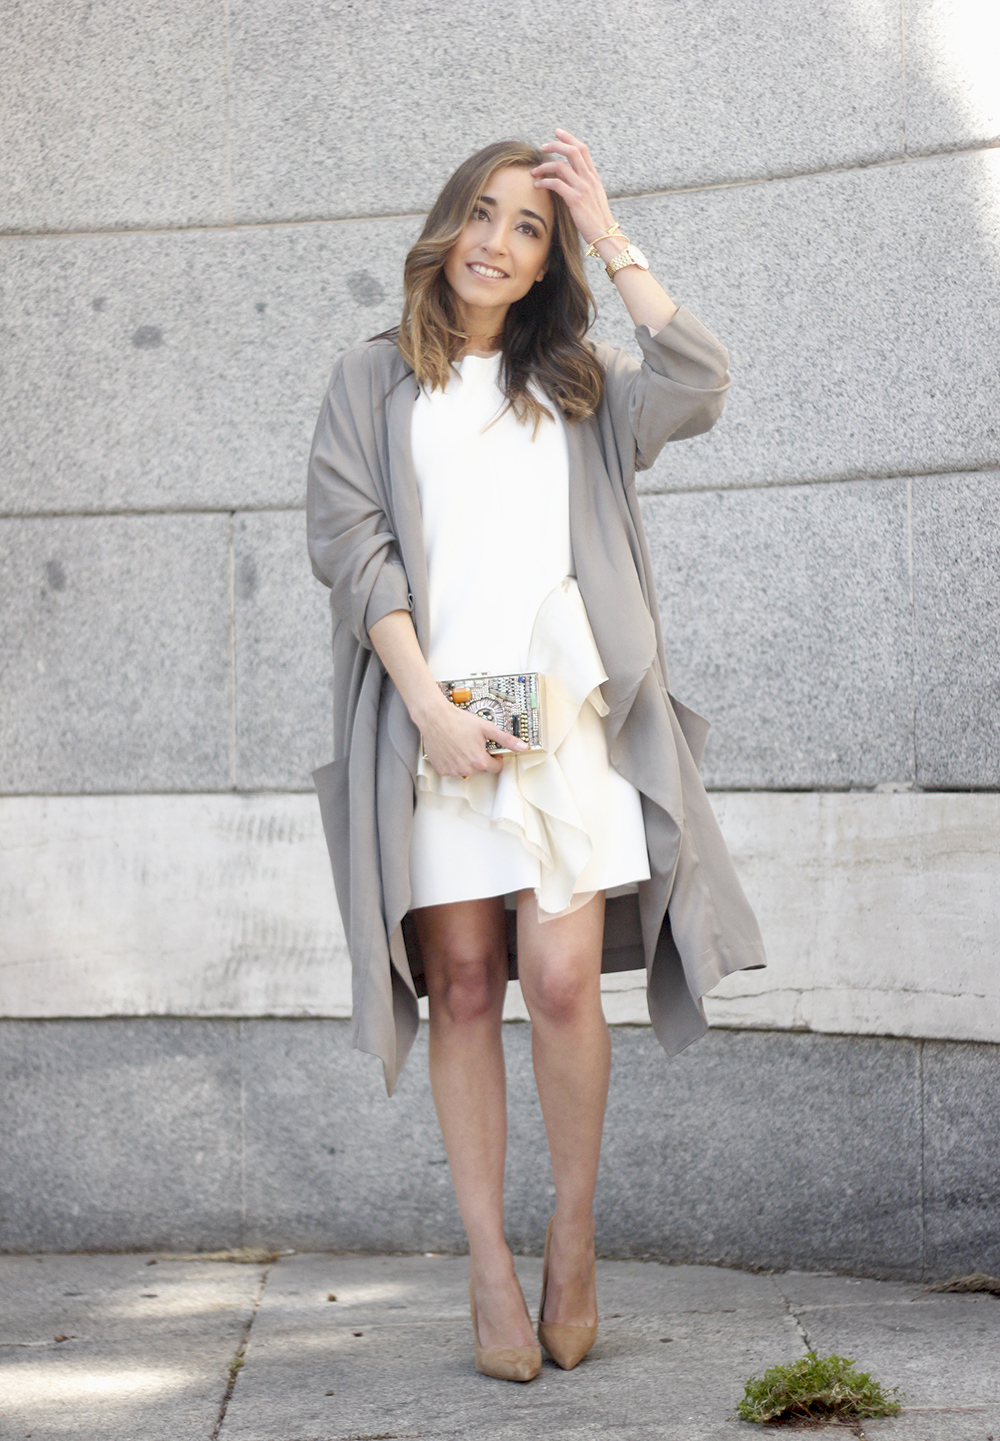 White dress with ruffles trench nude heels clutch accessories outfit style02